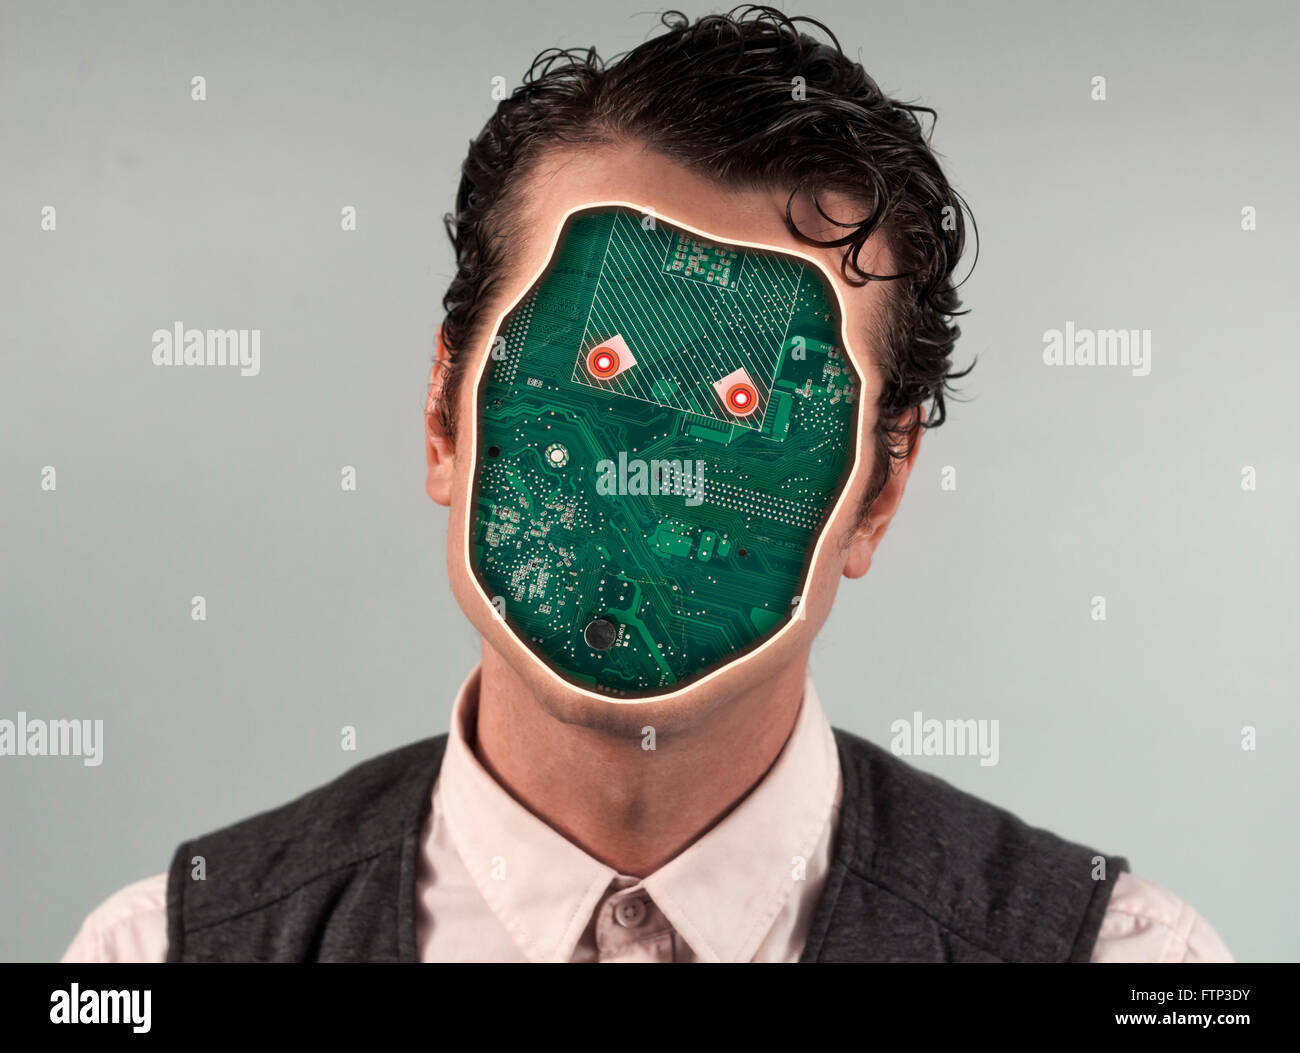 Human Robot Anonymous Circuit Board Stock Photos Cyborg With Face Image